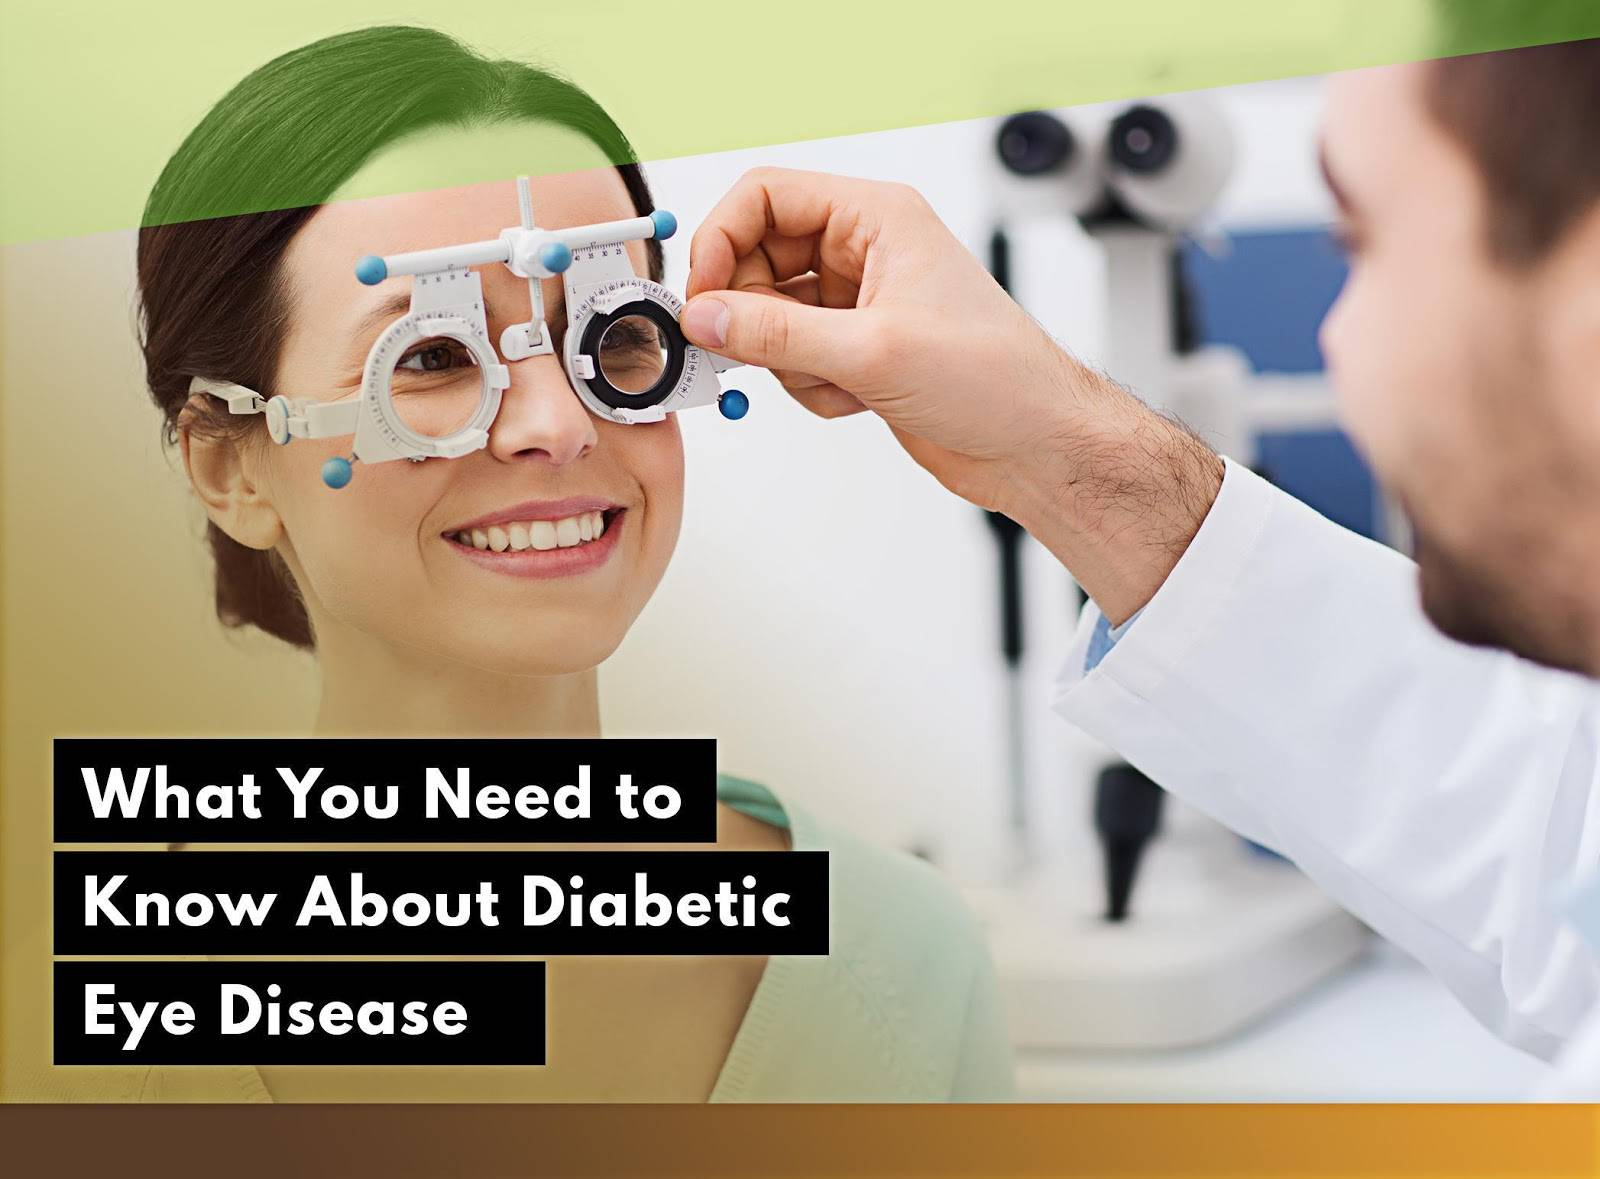 1507544397What-You-Need-to-Know-About-Diabetic-Eye-Disease